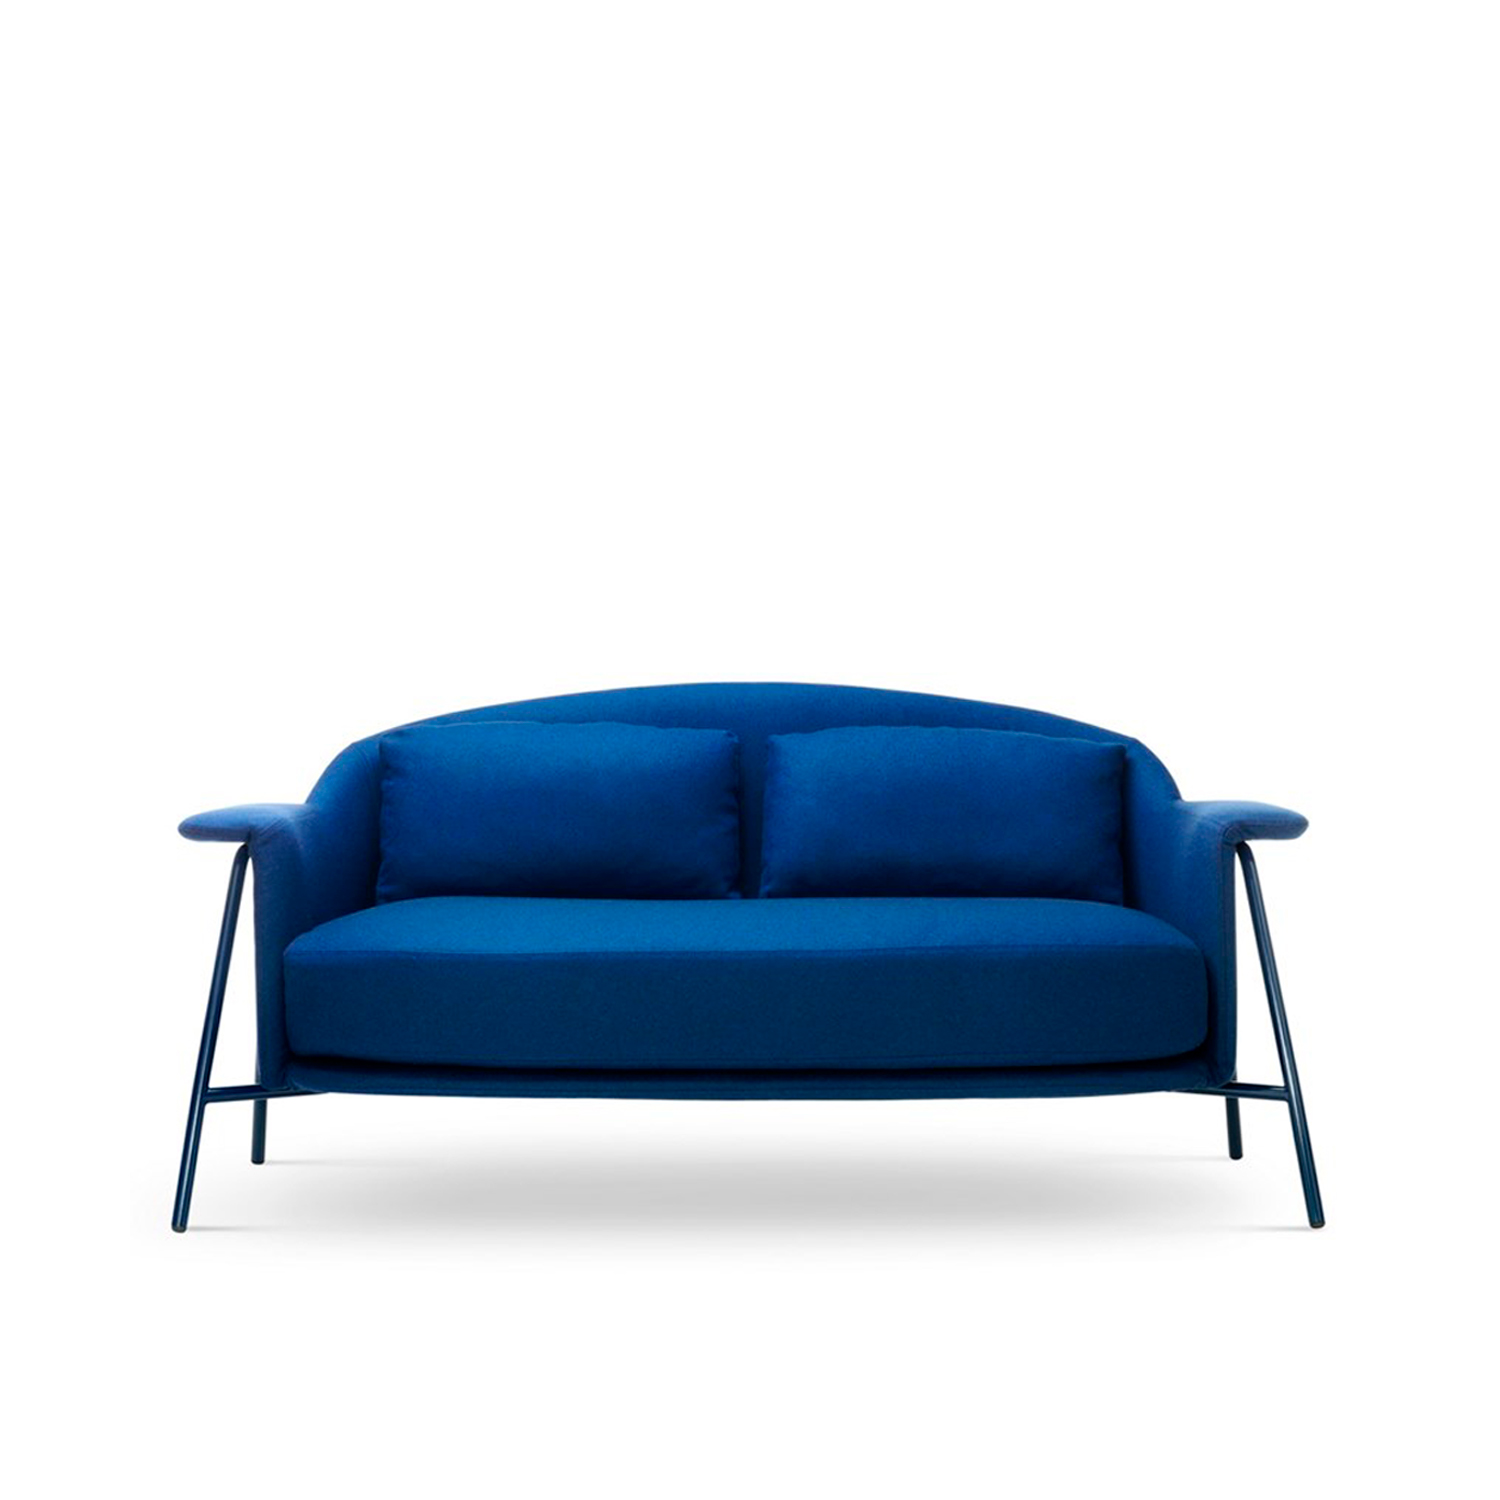 Kepi Sofa - The Kepi sofa's sober design and vaguely Nordic look are softened by rounded lines that add character and improve comfort.‎ This is the Kepi sofa, featuring complete symmetry with two back cushions and one seat cushion.‎ Its clean design and nonchalant elegance make it perfect for the home and the contract environment.‎ The functional supporting structure is made of tubular stainless steel.‎ Fully removable covers.‎